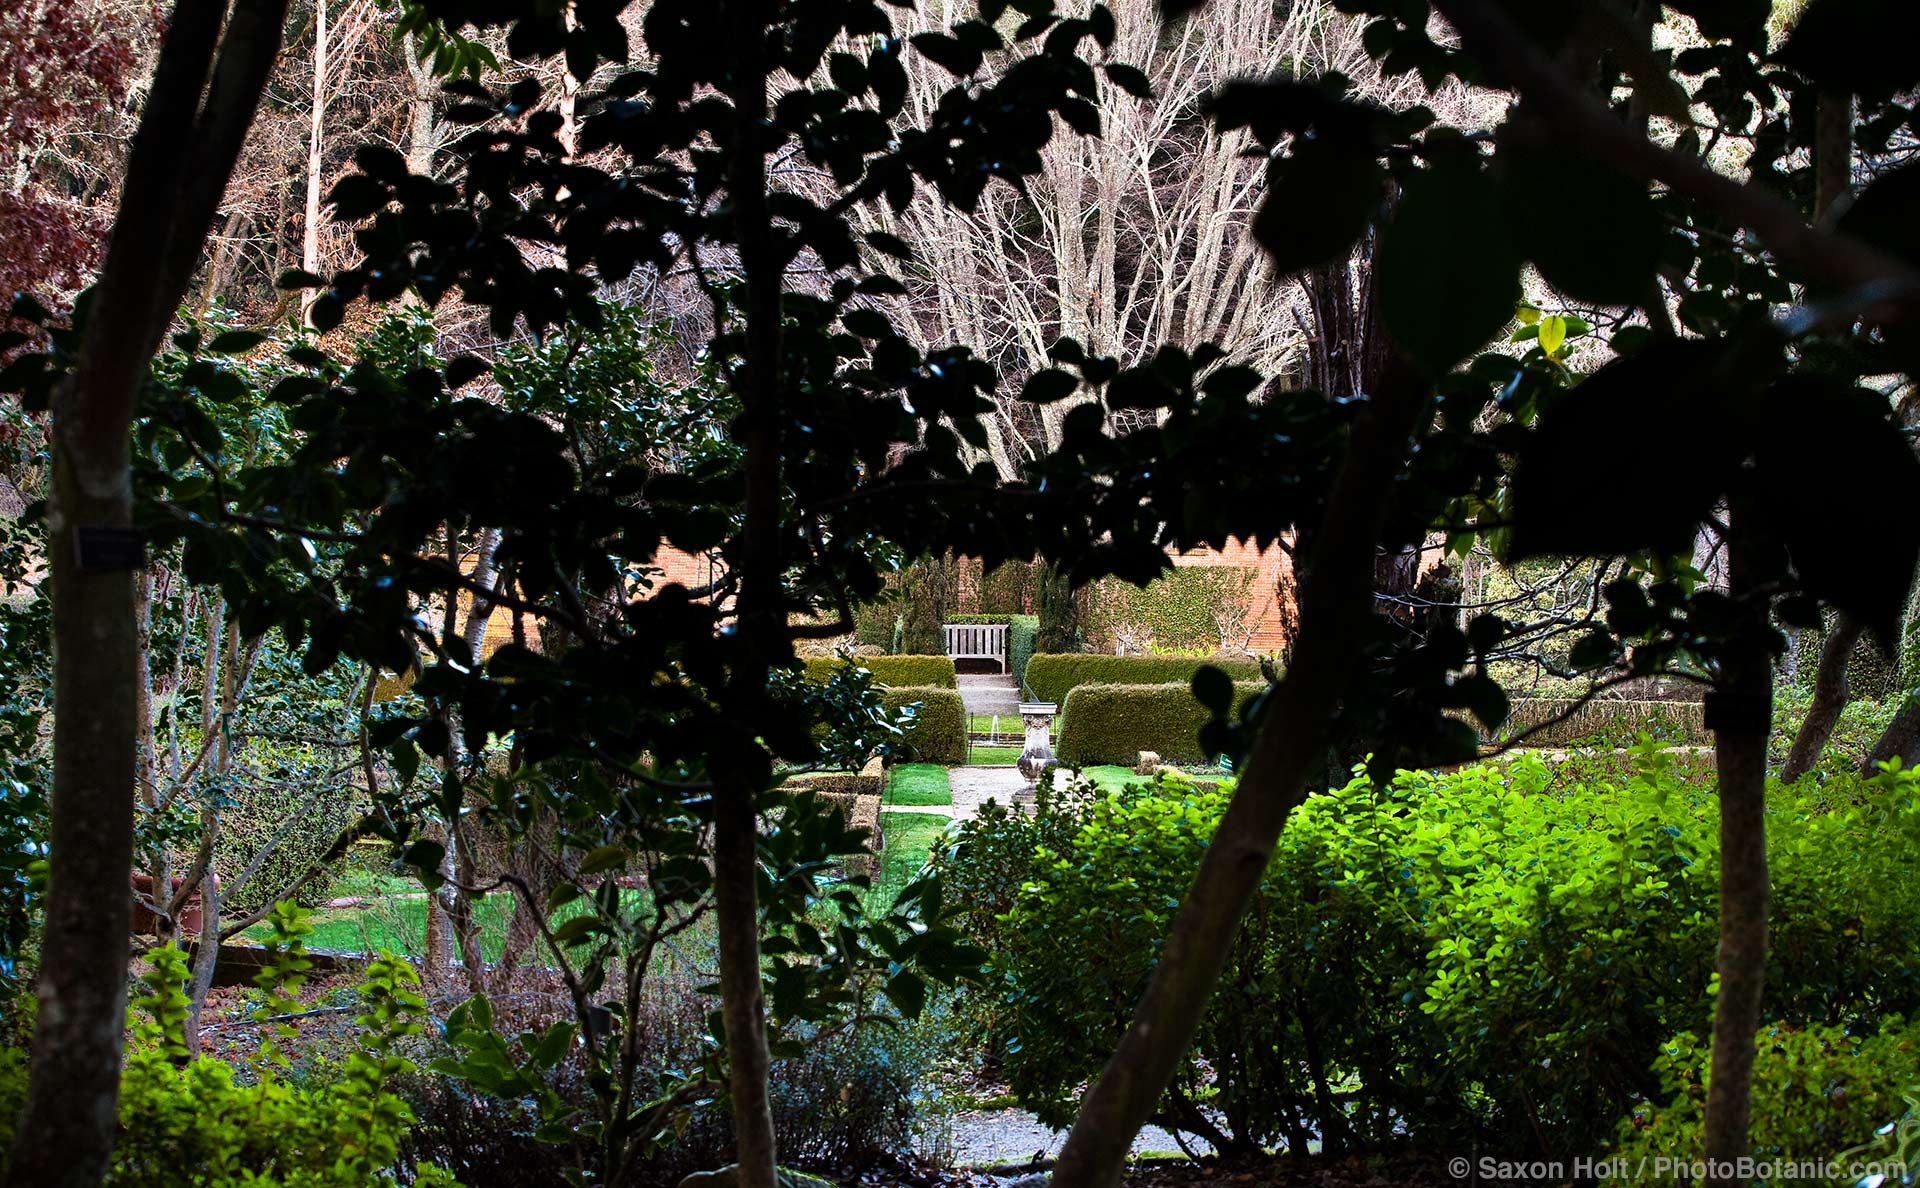 View of Filoli Wall Garden seen from shady Camellia shrub garden in winter